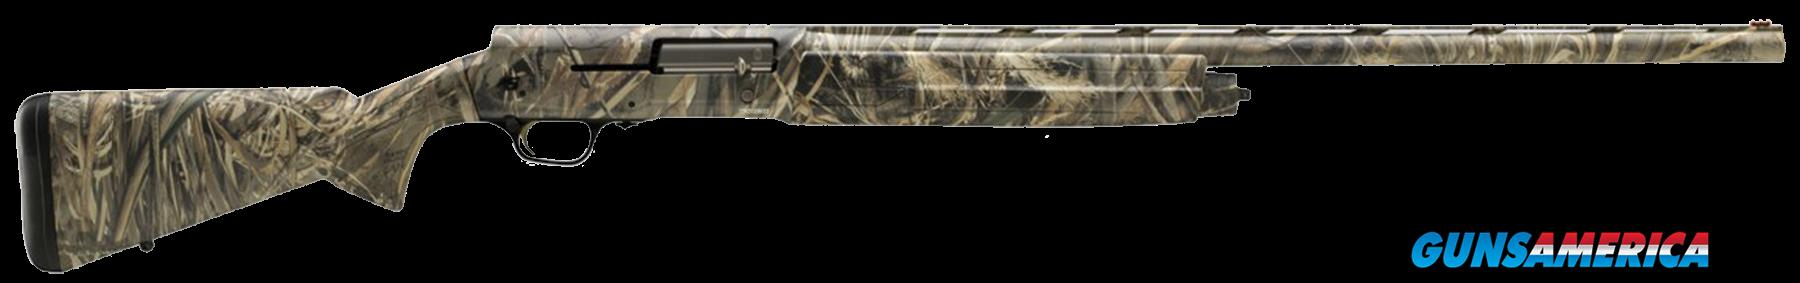 "Browning 0118212003 A5 Semi-Automatic 12 Gauge 30"" 3.5"" Realtree Max-5 Synthetic Stk Realtree Max-5  Guns > Shotguns > Browning Shotguns > Autoloaders > Hunting"